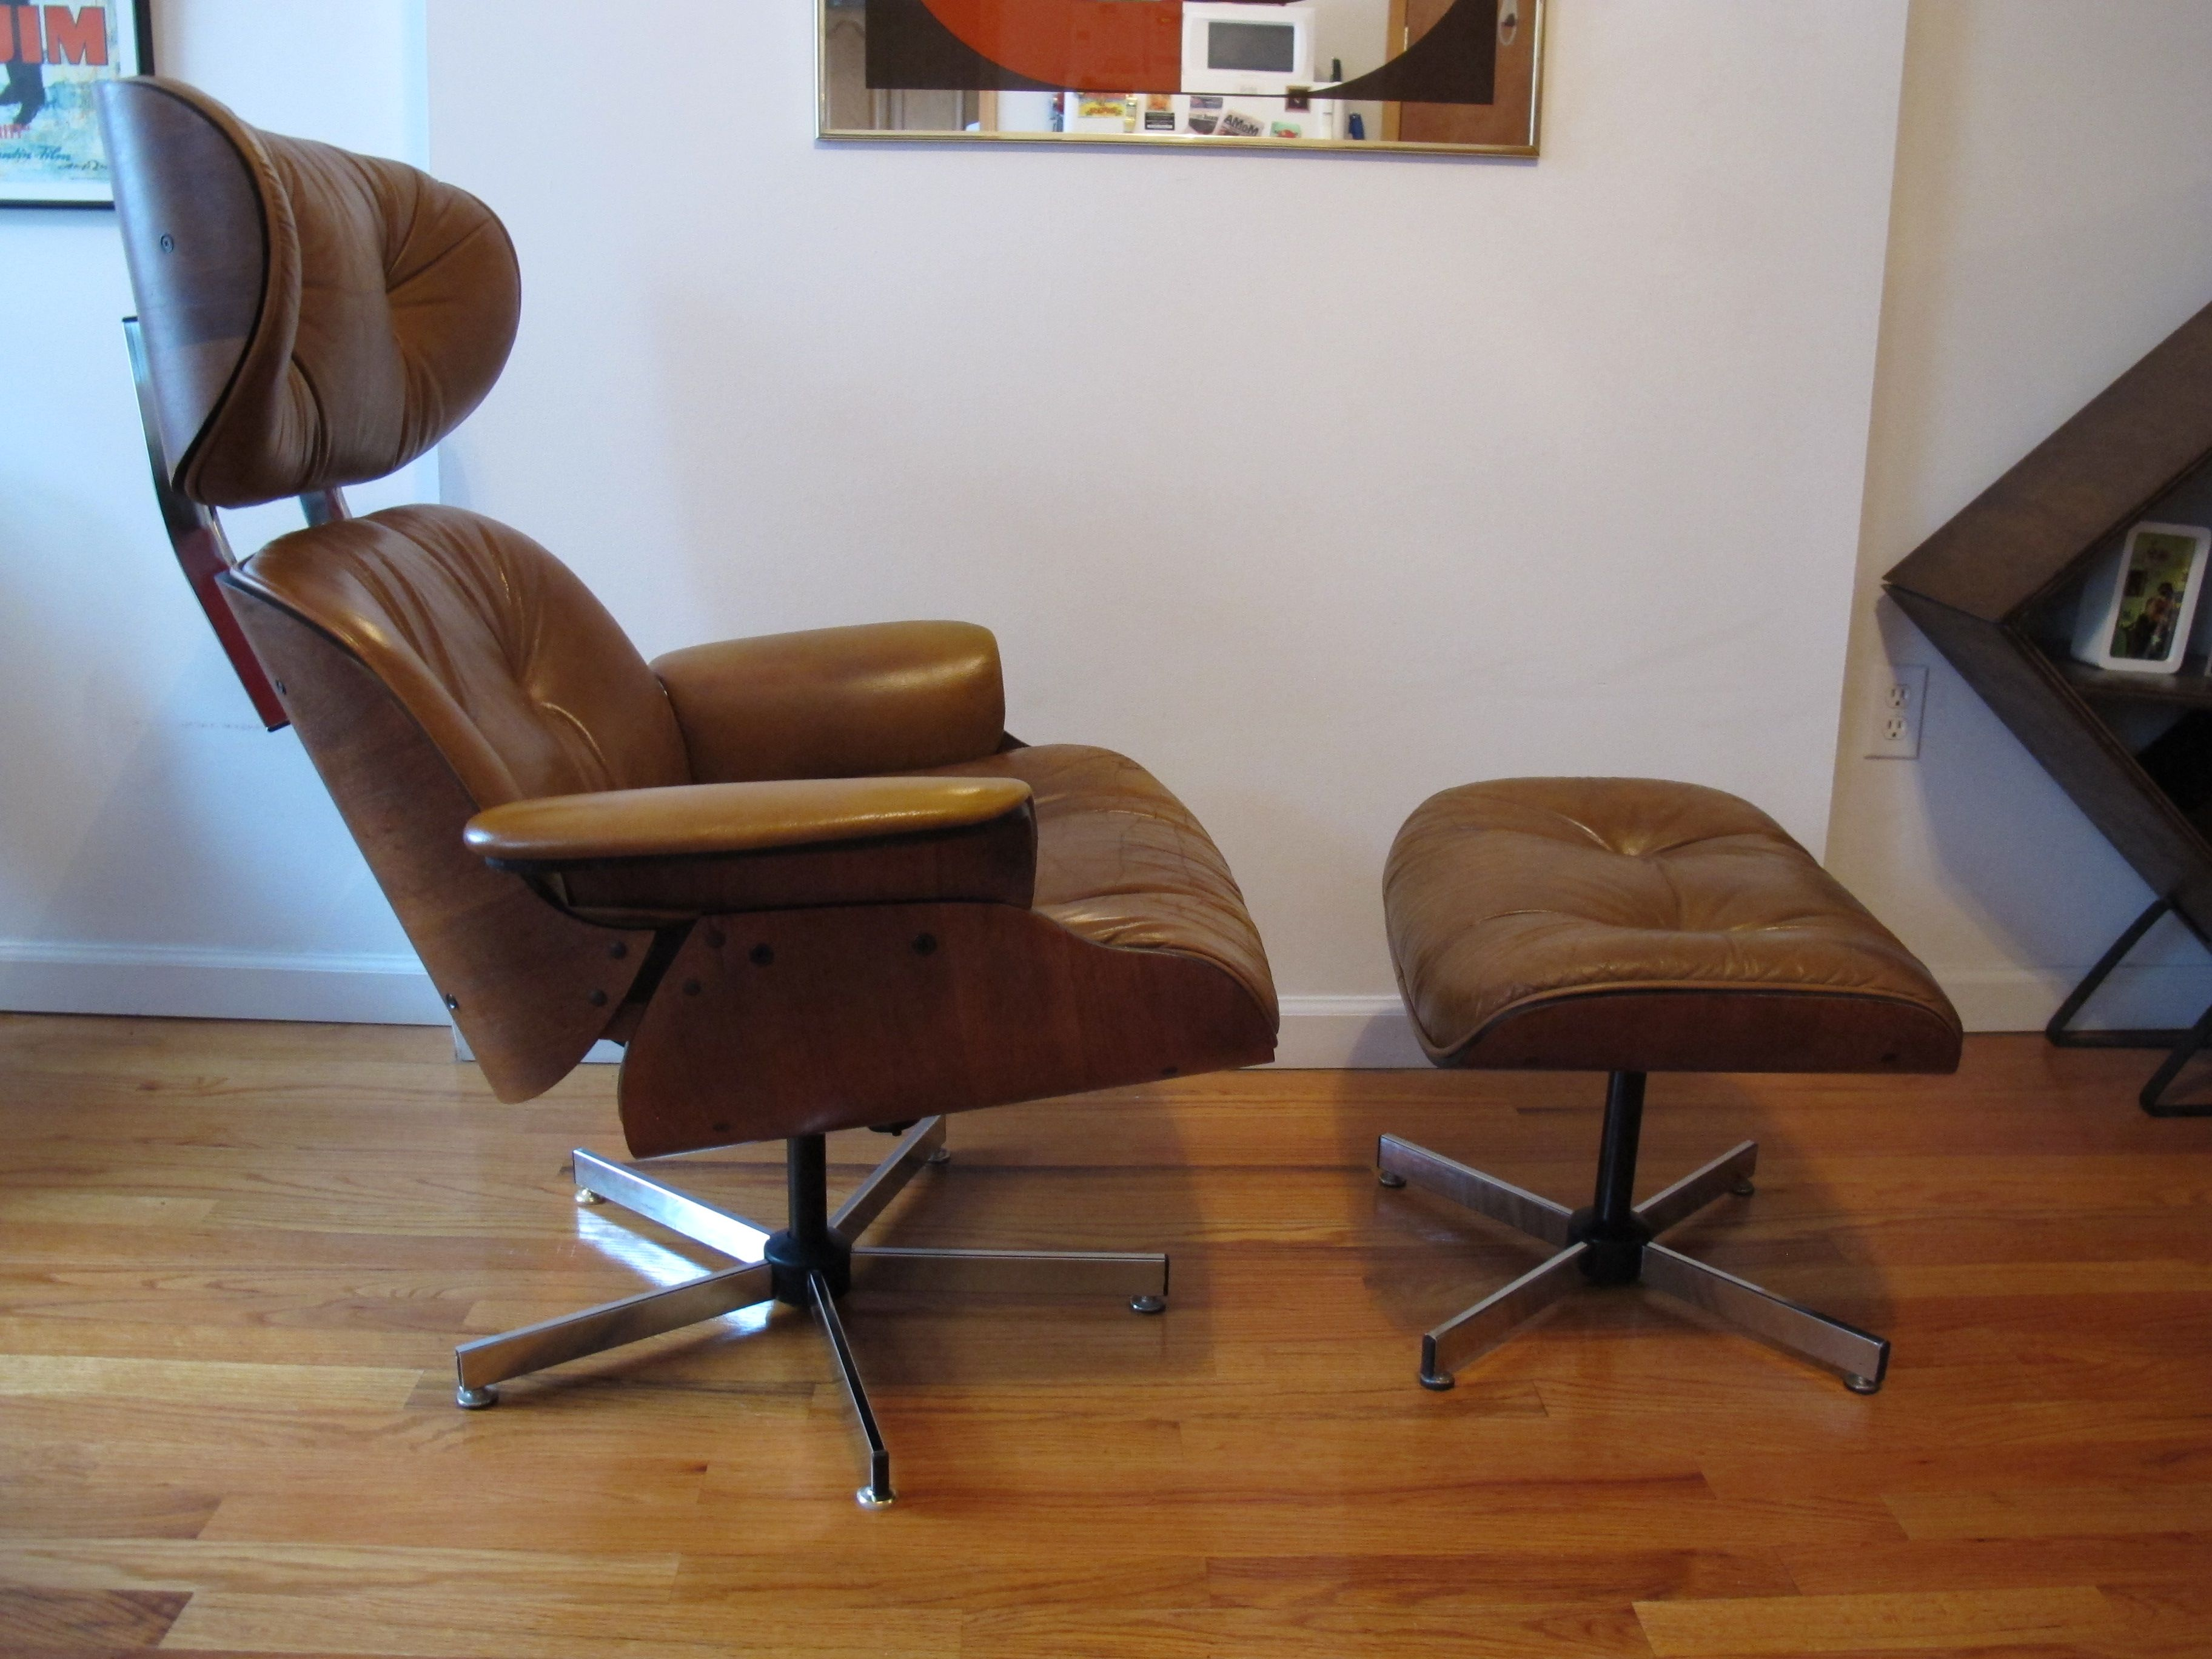 Selig Eames Chair Big Lots Bean Bag Chairs Style Tan Lounge Sold Items Adverts Vintage